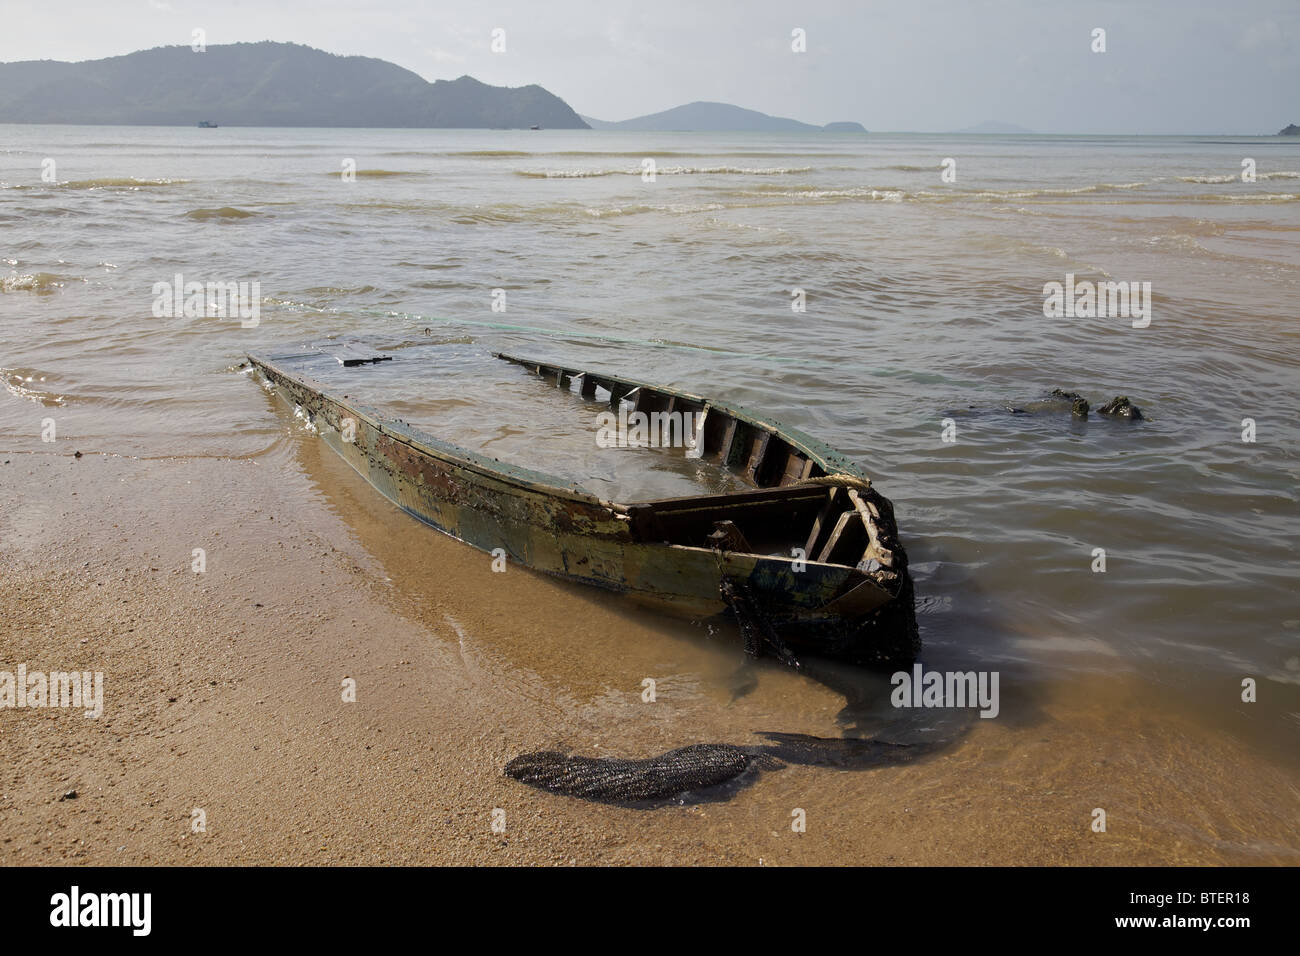 A boat that has seen better days in Chalong bay, Phuket Thailand - Stock Image